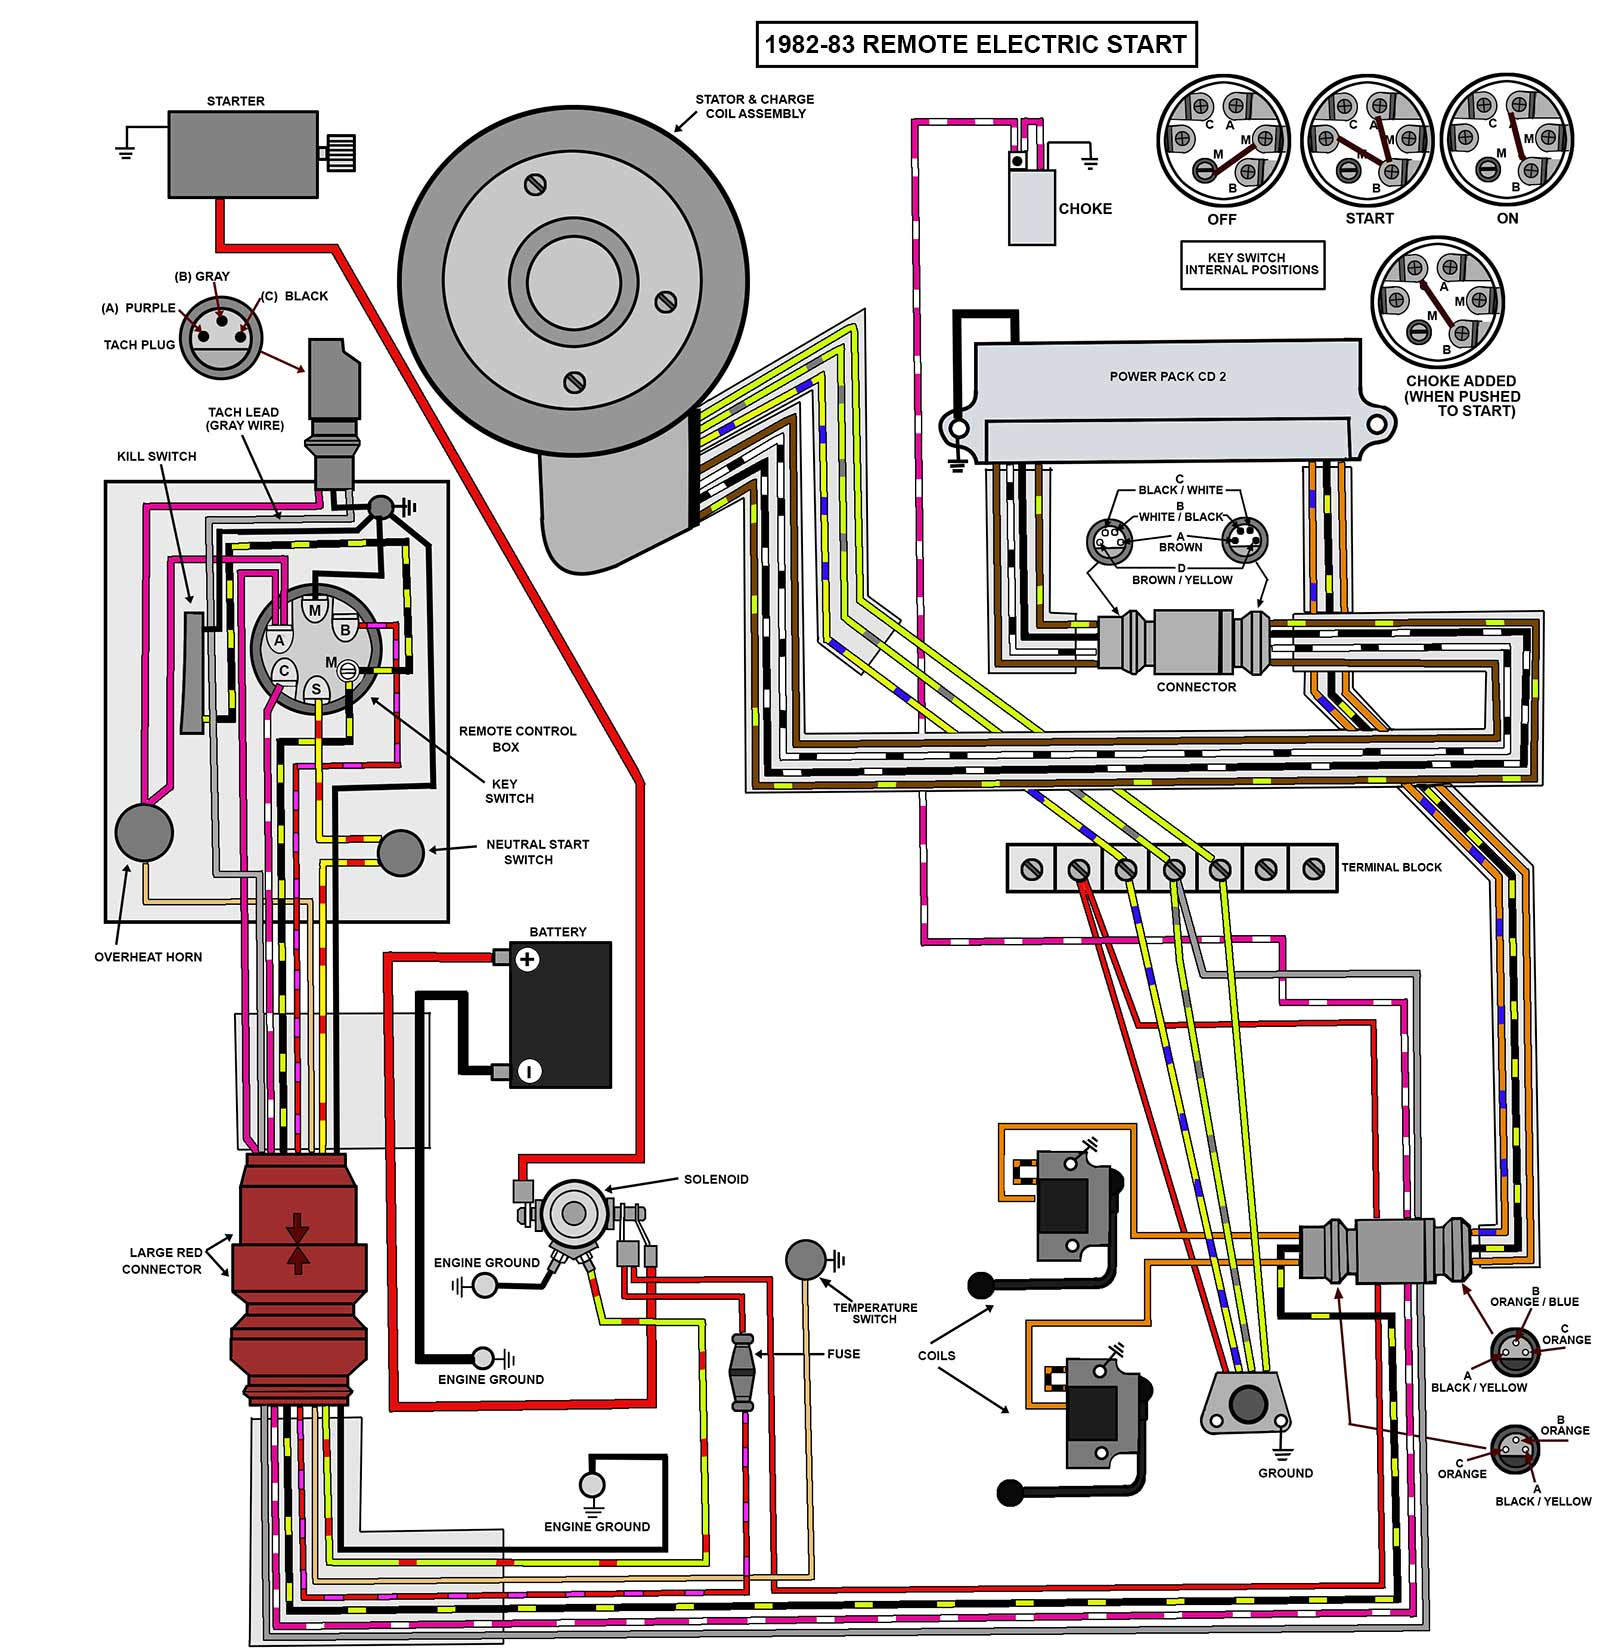 25_35_82 83_elec remote hp wiring diagram wiring harness diagram \u2022 wiring diagrams j 40 hp mercury wiring harness schematic at webbmarketing.co